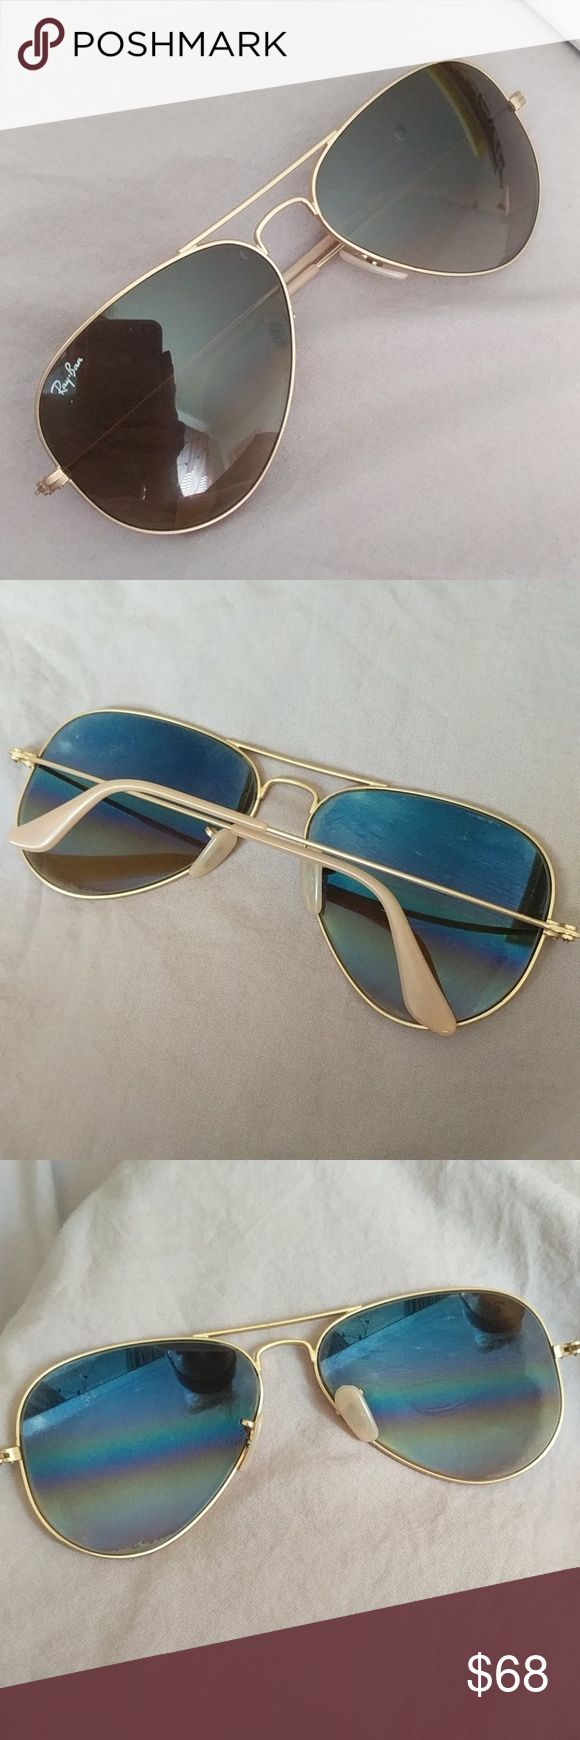 Ray-Ban large gold metal aviator sunglasses Authentic Ray-Ban RB 3025 large gold metal aviator sunglasses  Gently used. Comes with original box. Not polarized. Ray-Ban Accessories Sunglasses